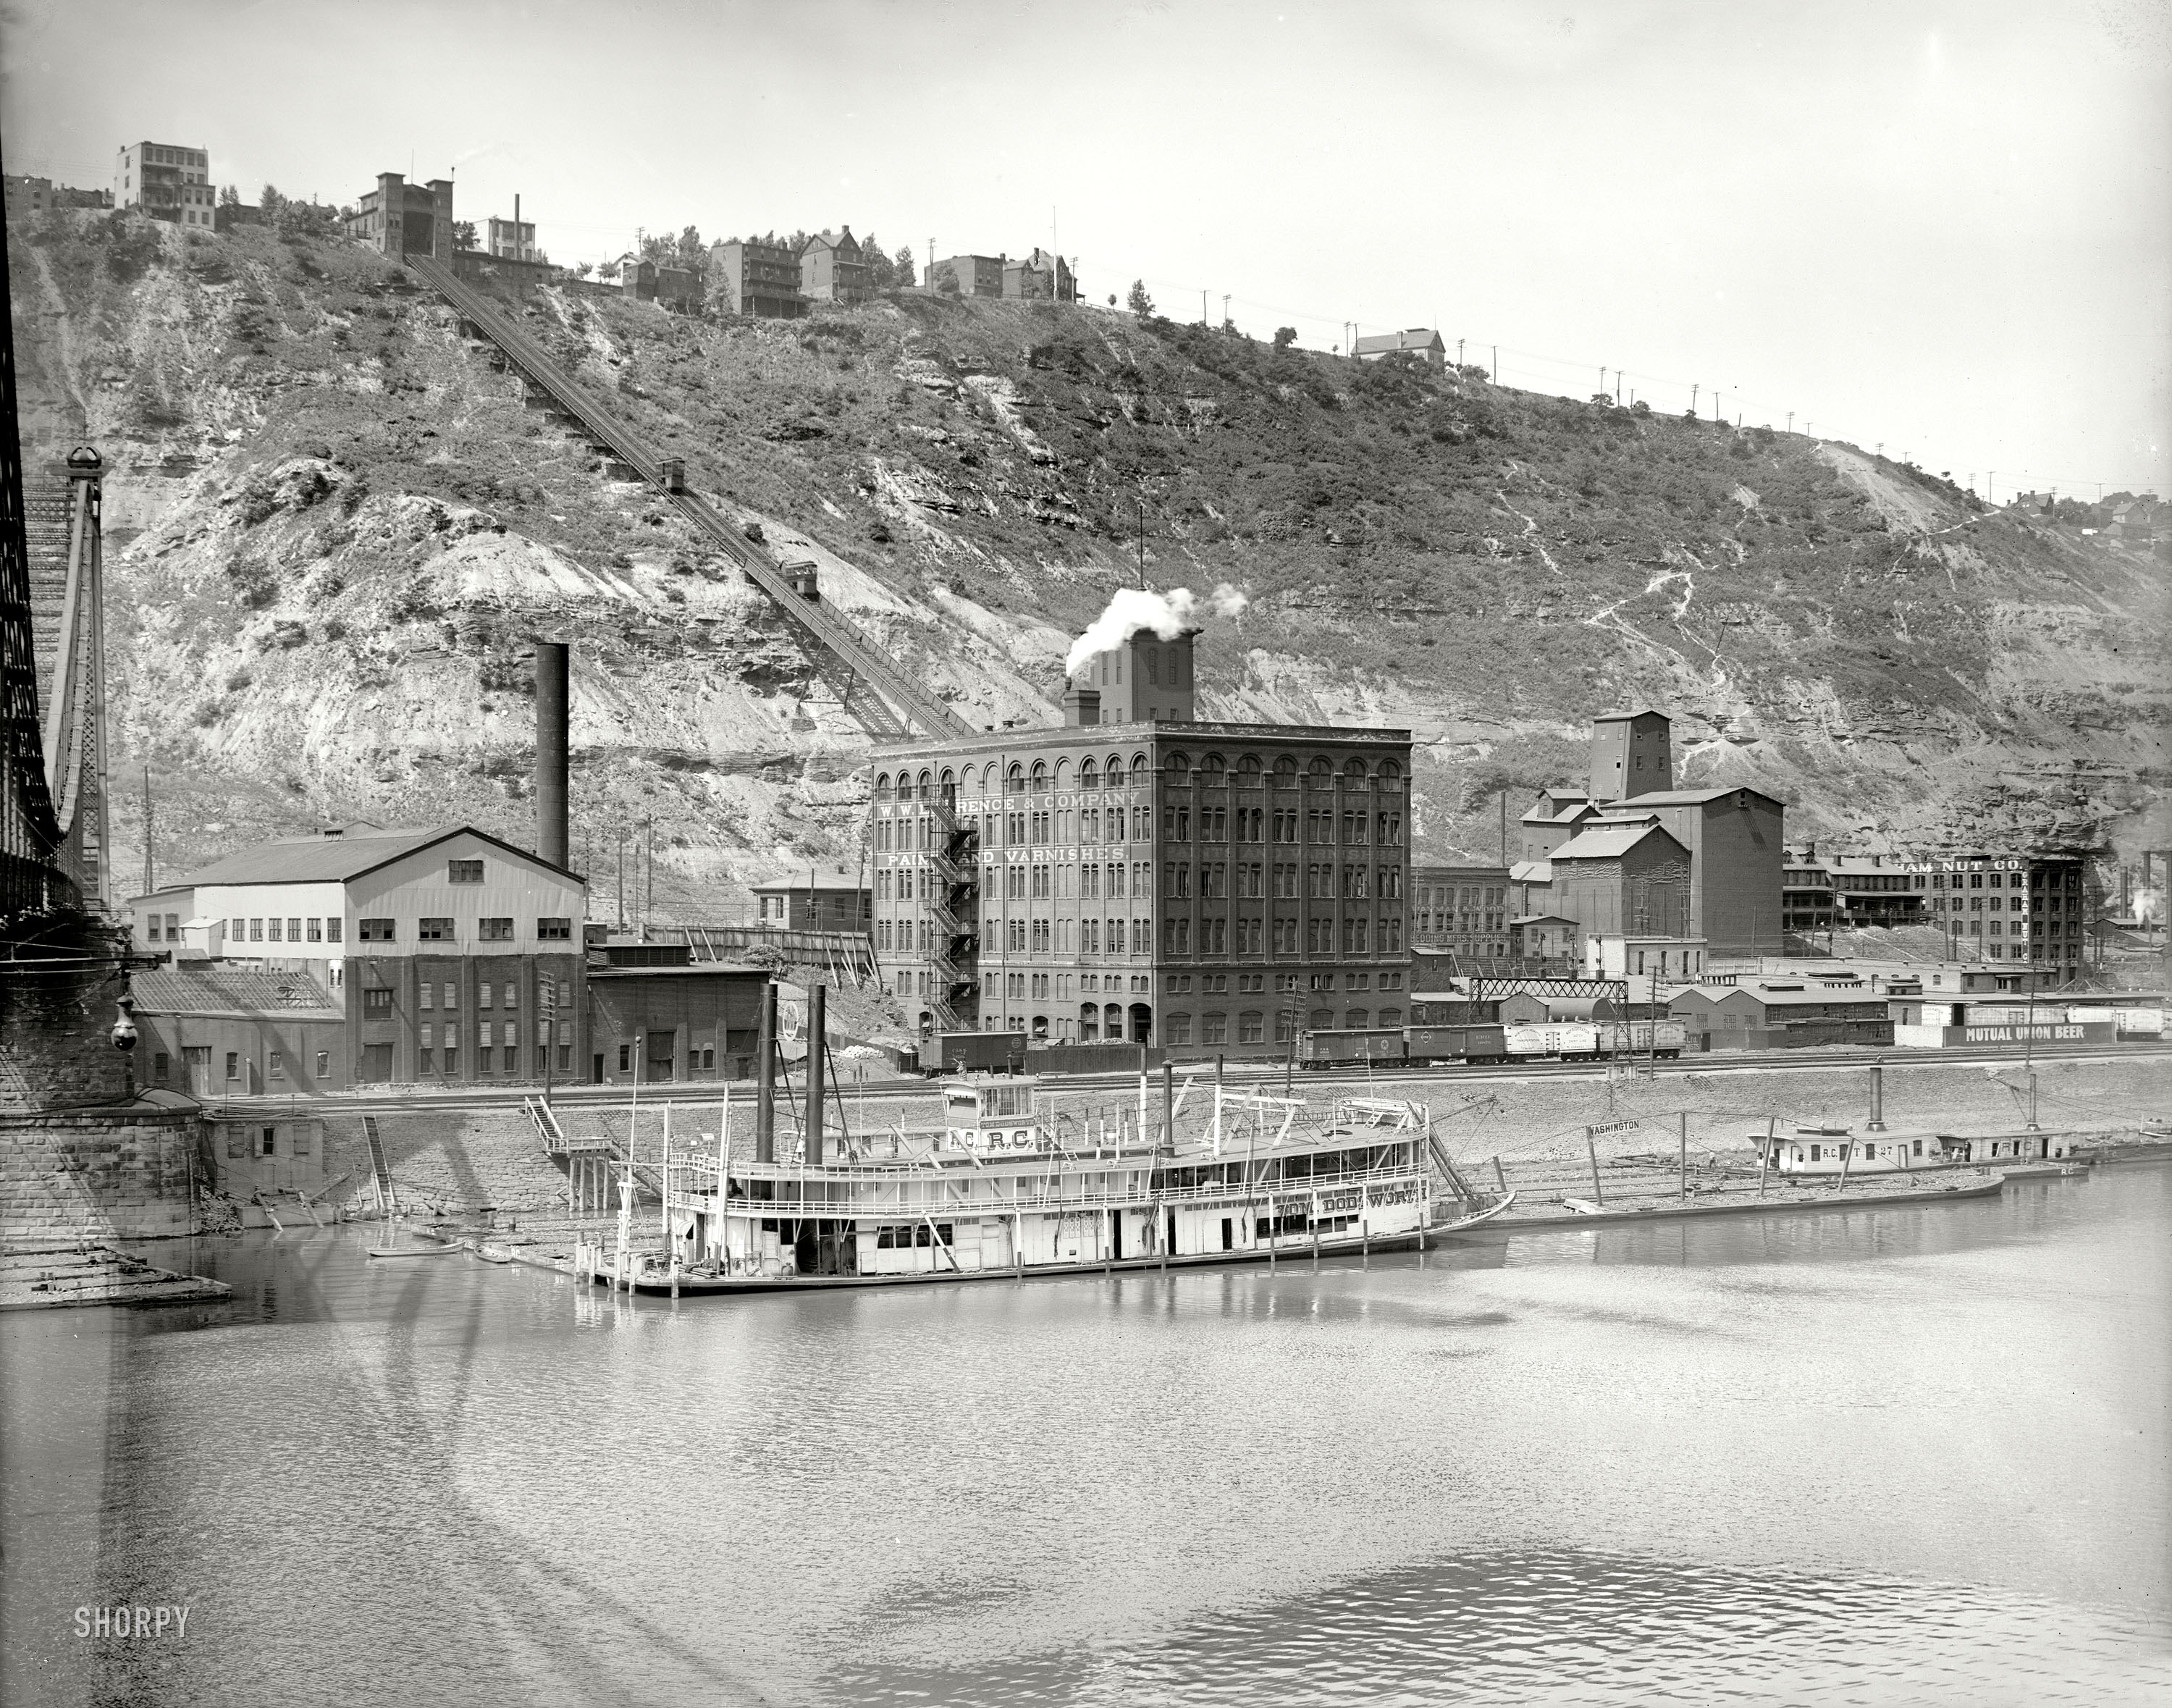 Duquesne_Incline_1900